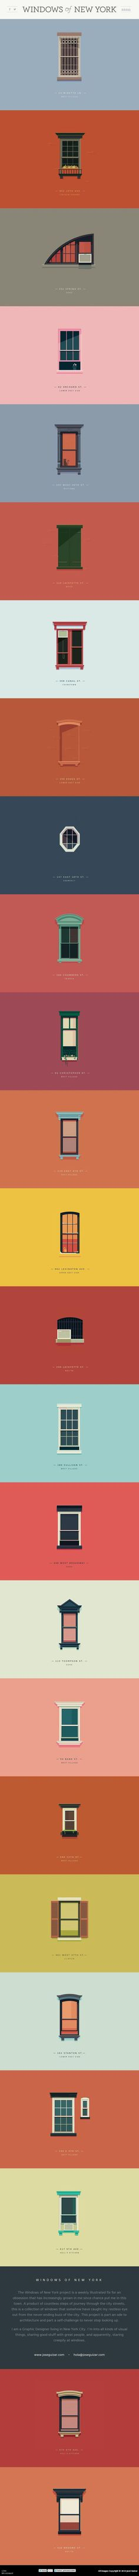 graphic illustrations of window